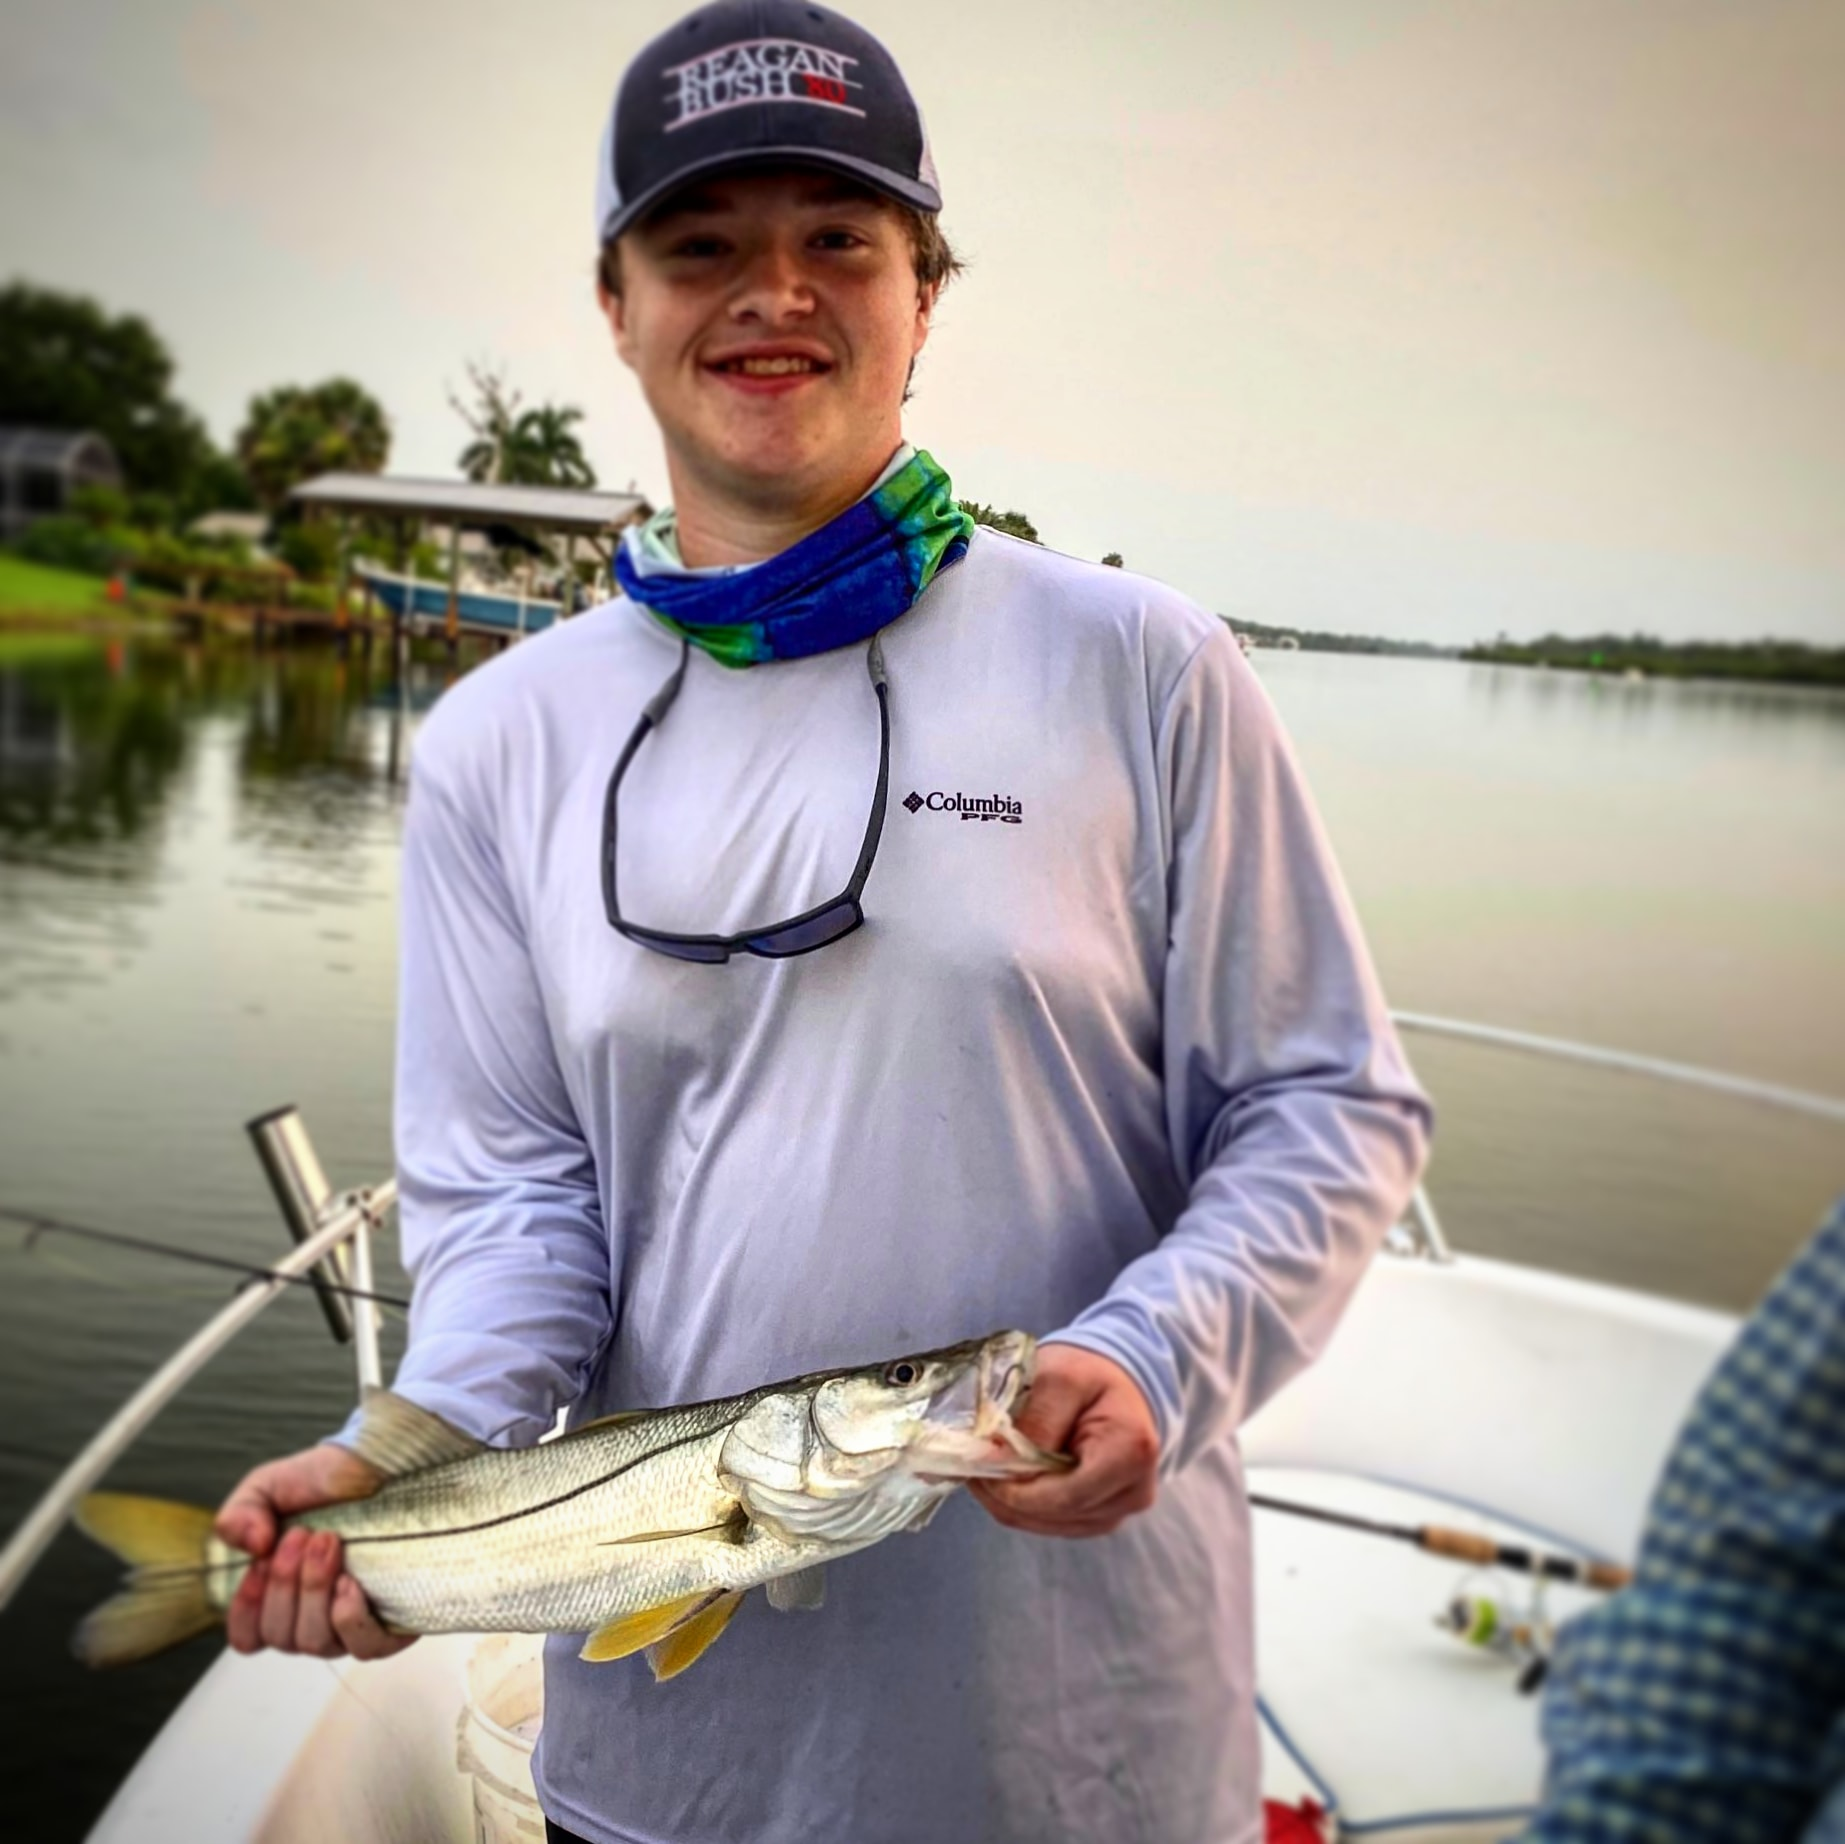 Snook|Captain John Tarr|Flyfishing